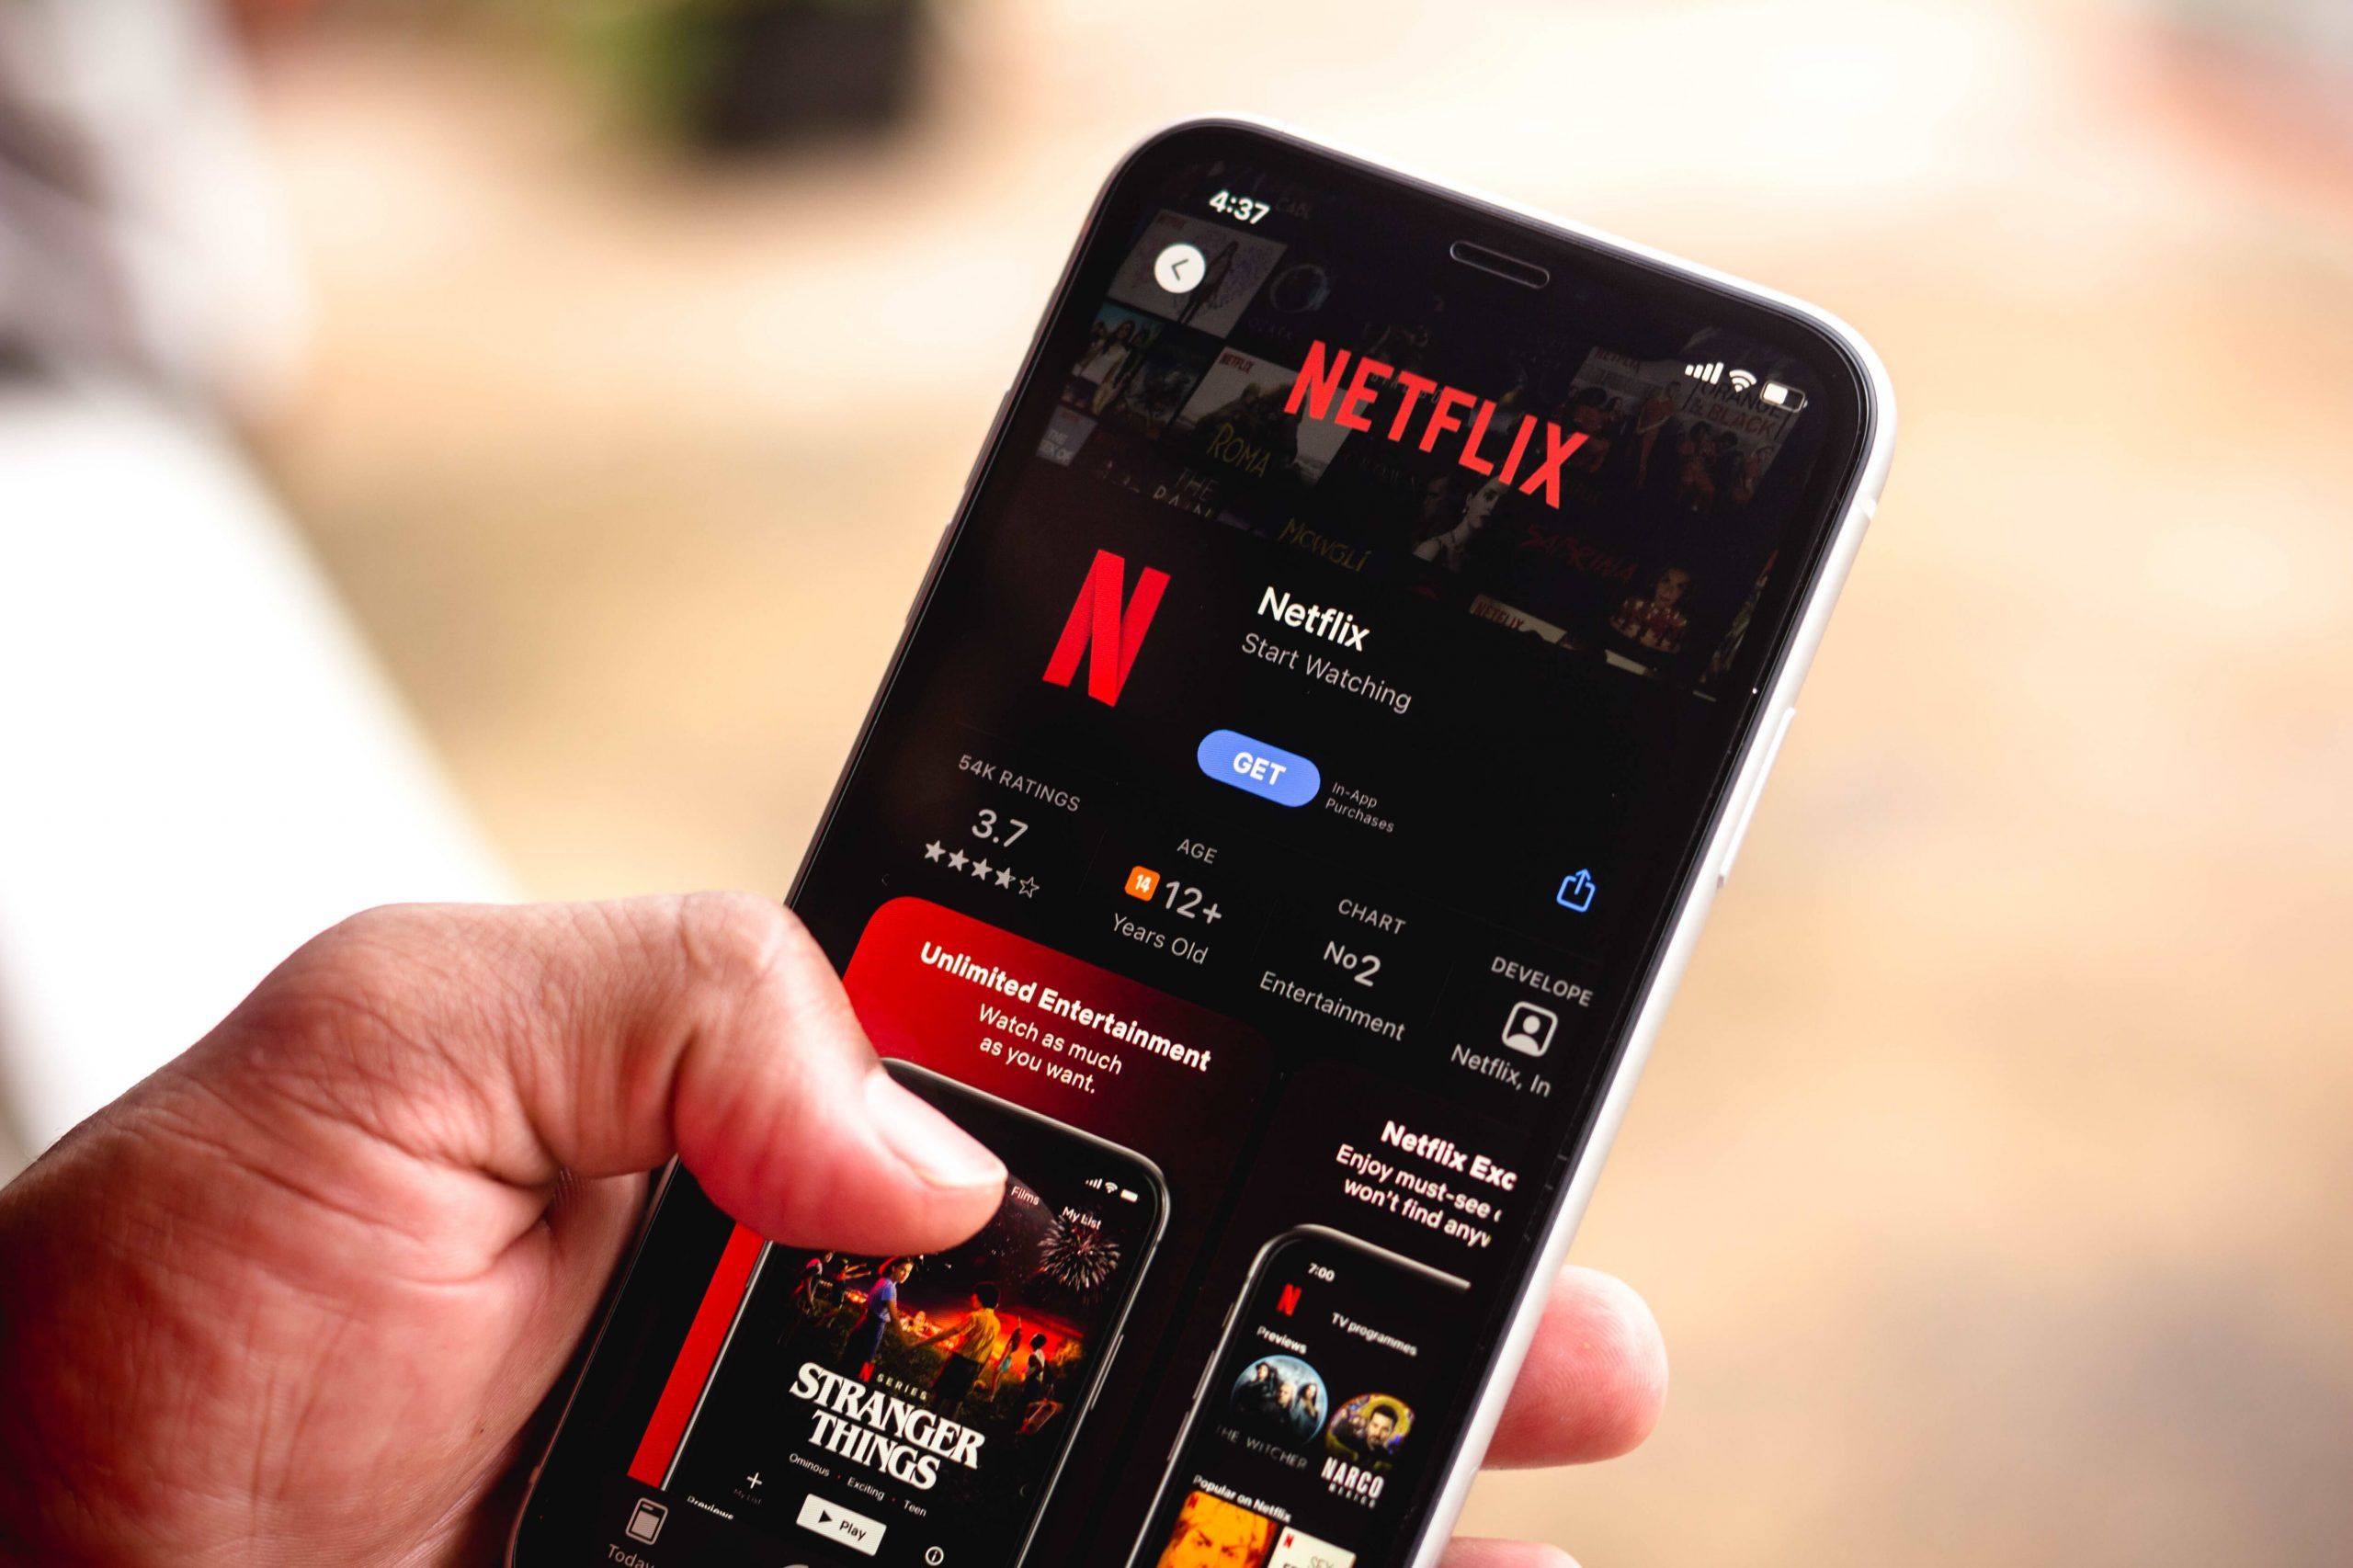 Netflix games are coming — and the reasons are very Netflixian